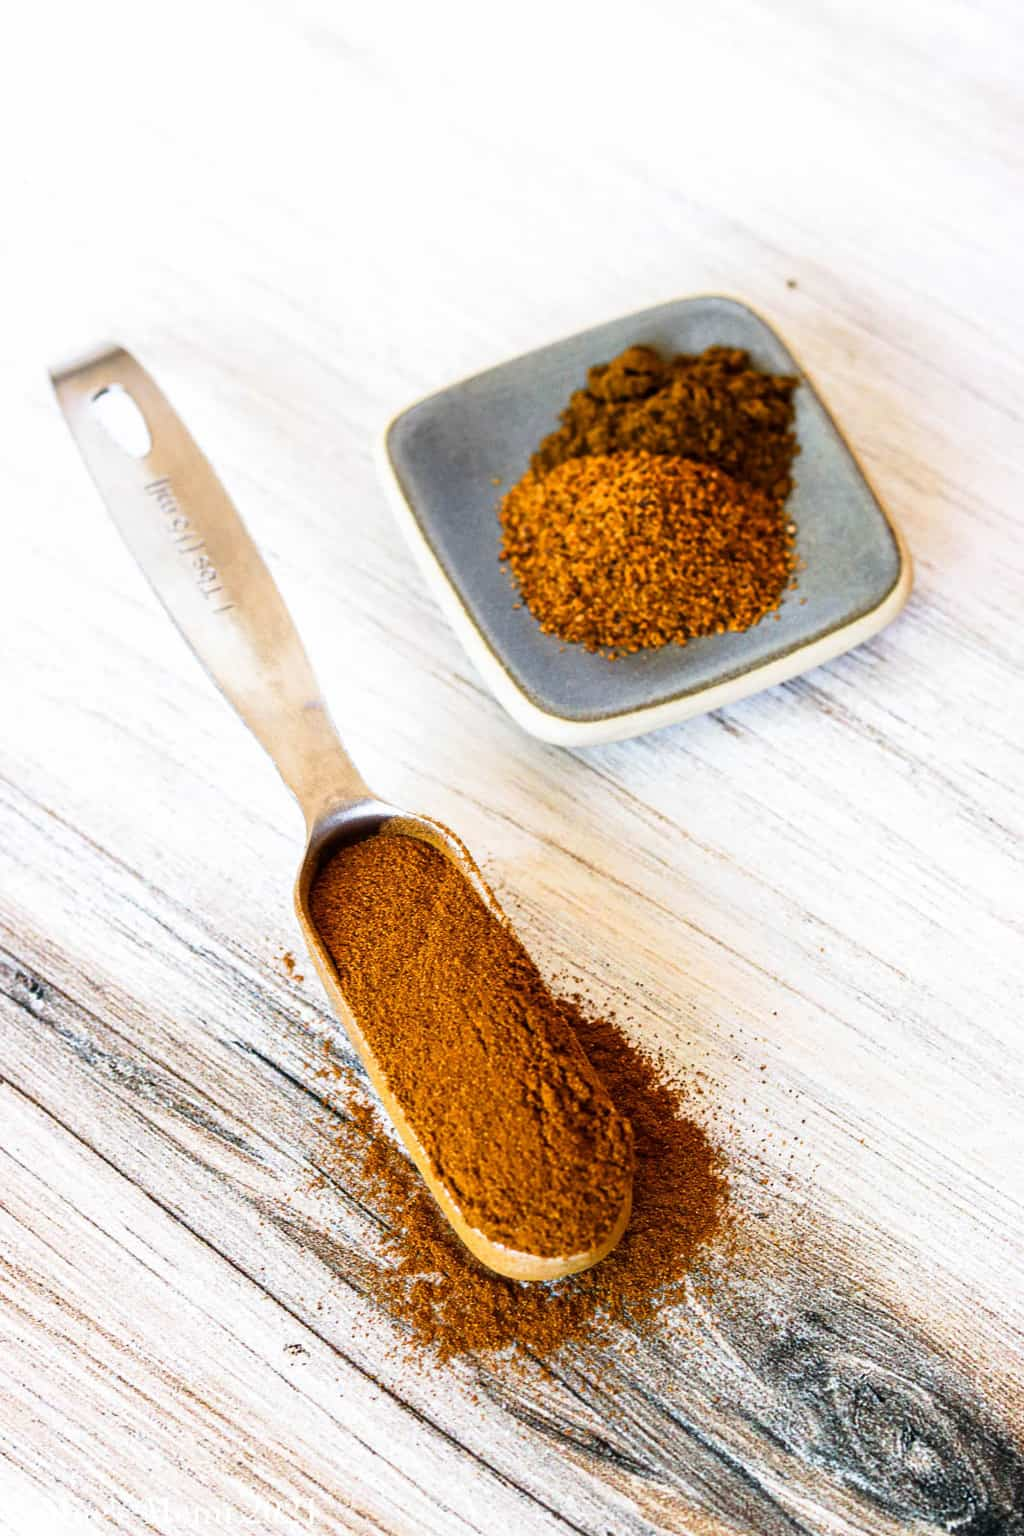 An up-close shot of a tablespoon of cinnamon in front of a small dish of nutmeg and cloves